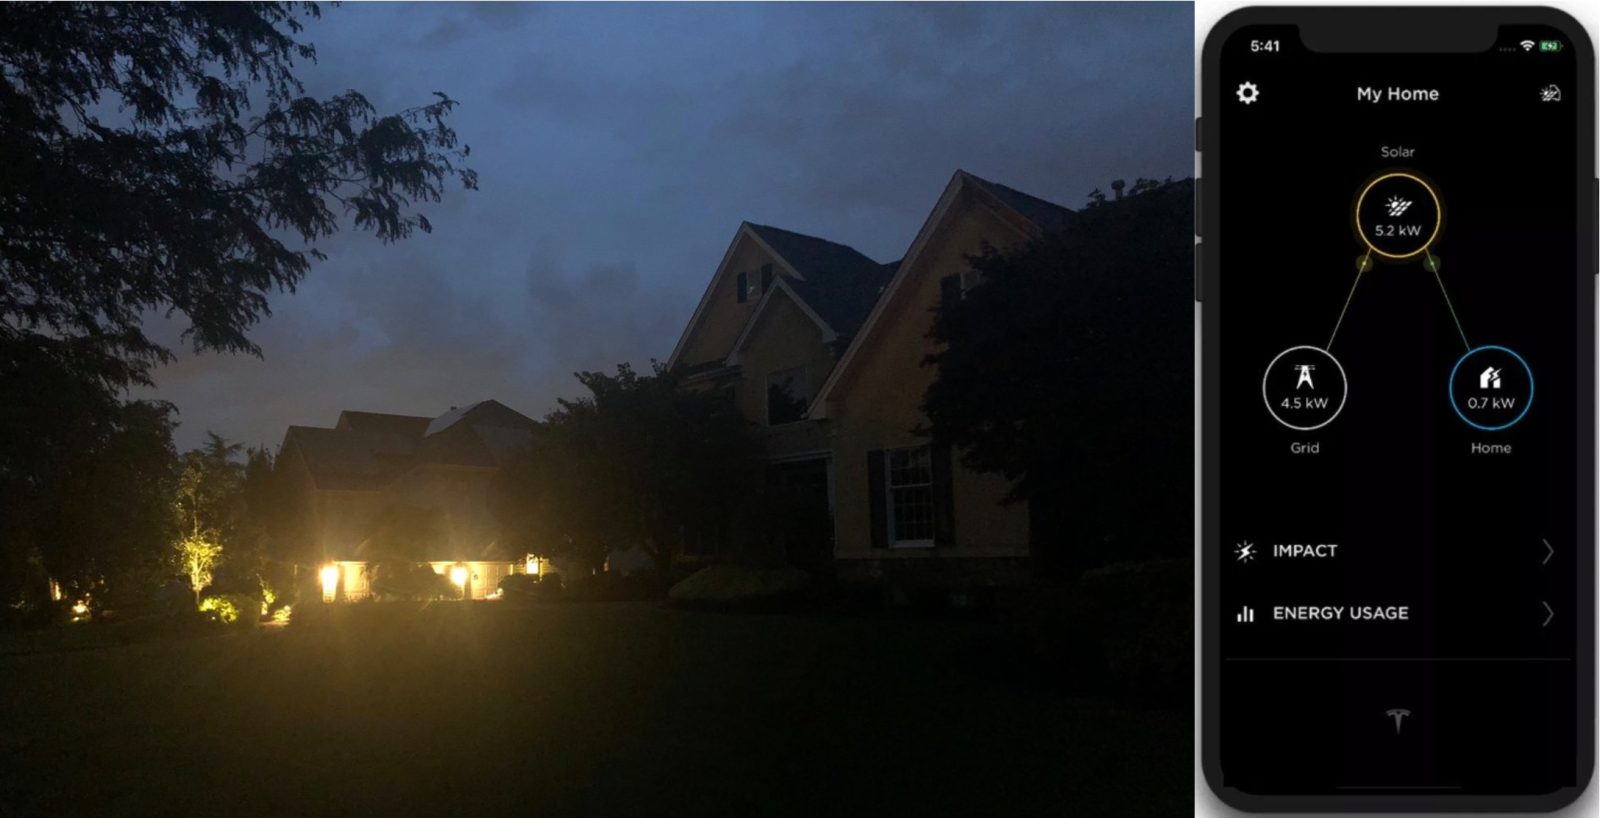 Tesla shares picture of Powerwall home with lights on while outage plunges neighborhood in the dark